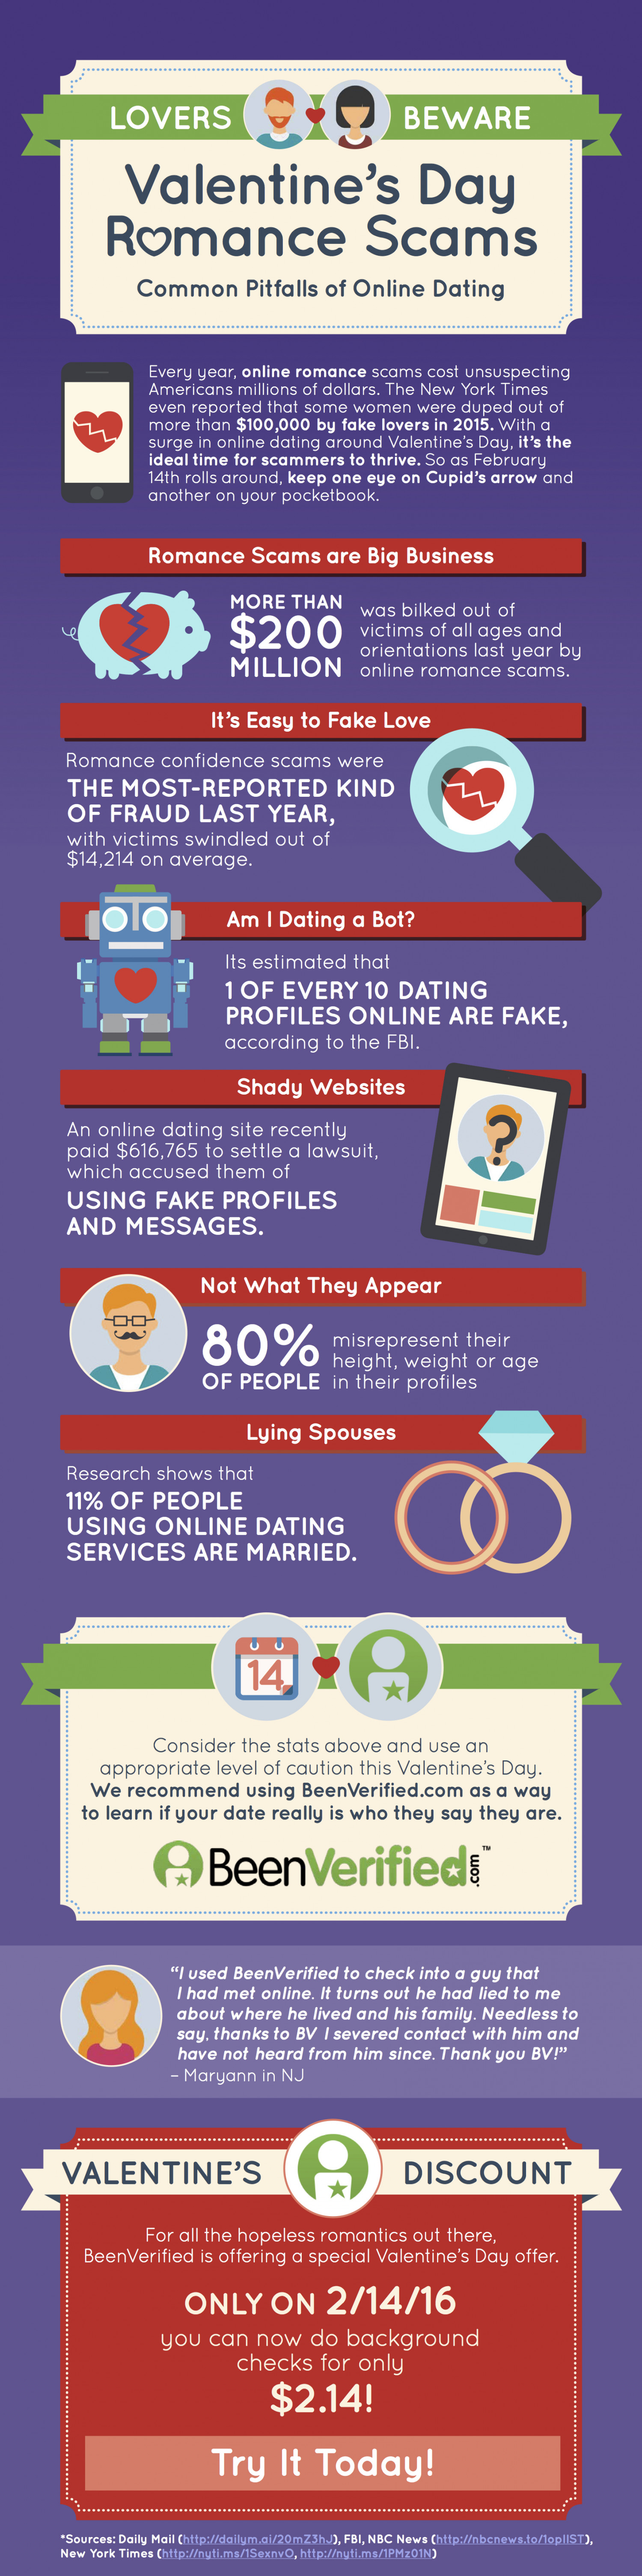 what to do if scammed online dating